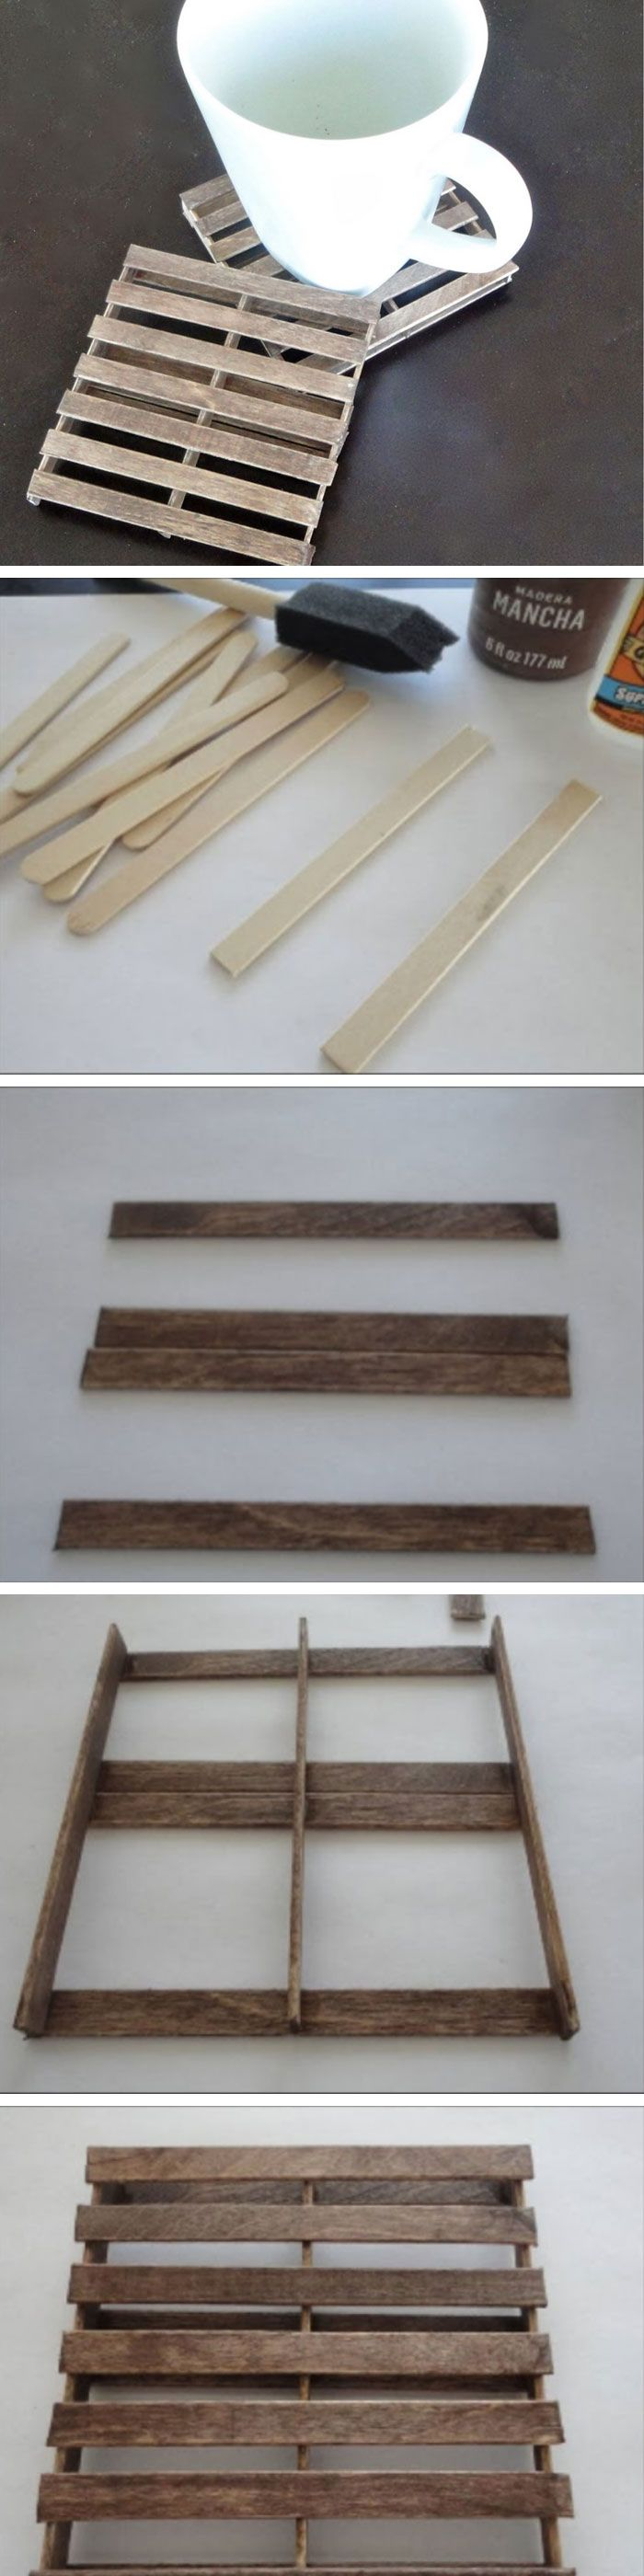 DIY Mini Pallet Coasters | 20 DIY Fathers Day Gift Ideas from Wife | DIY Holiday Gift Ideas for Men